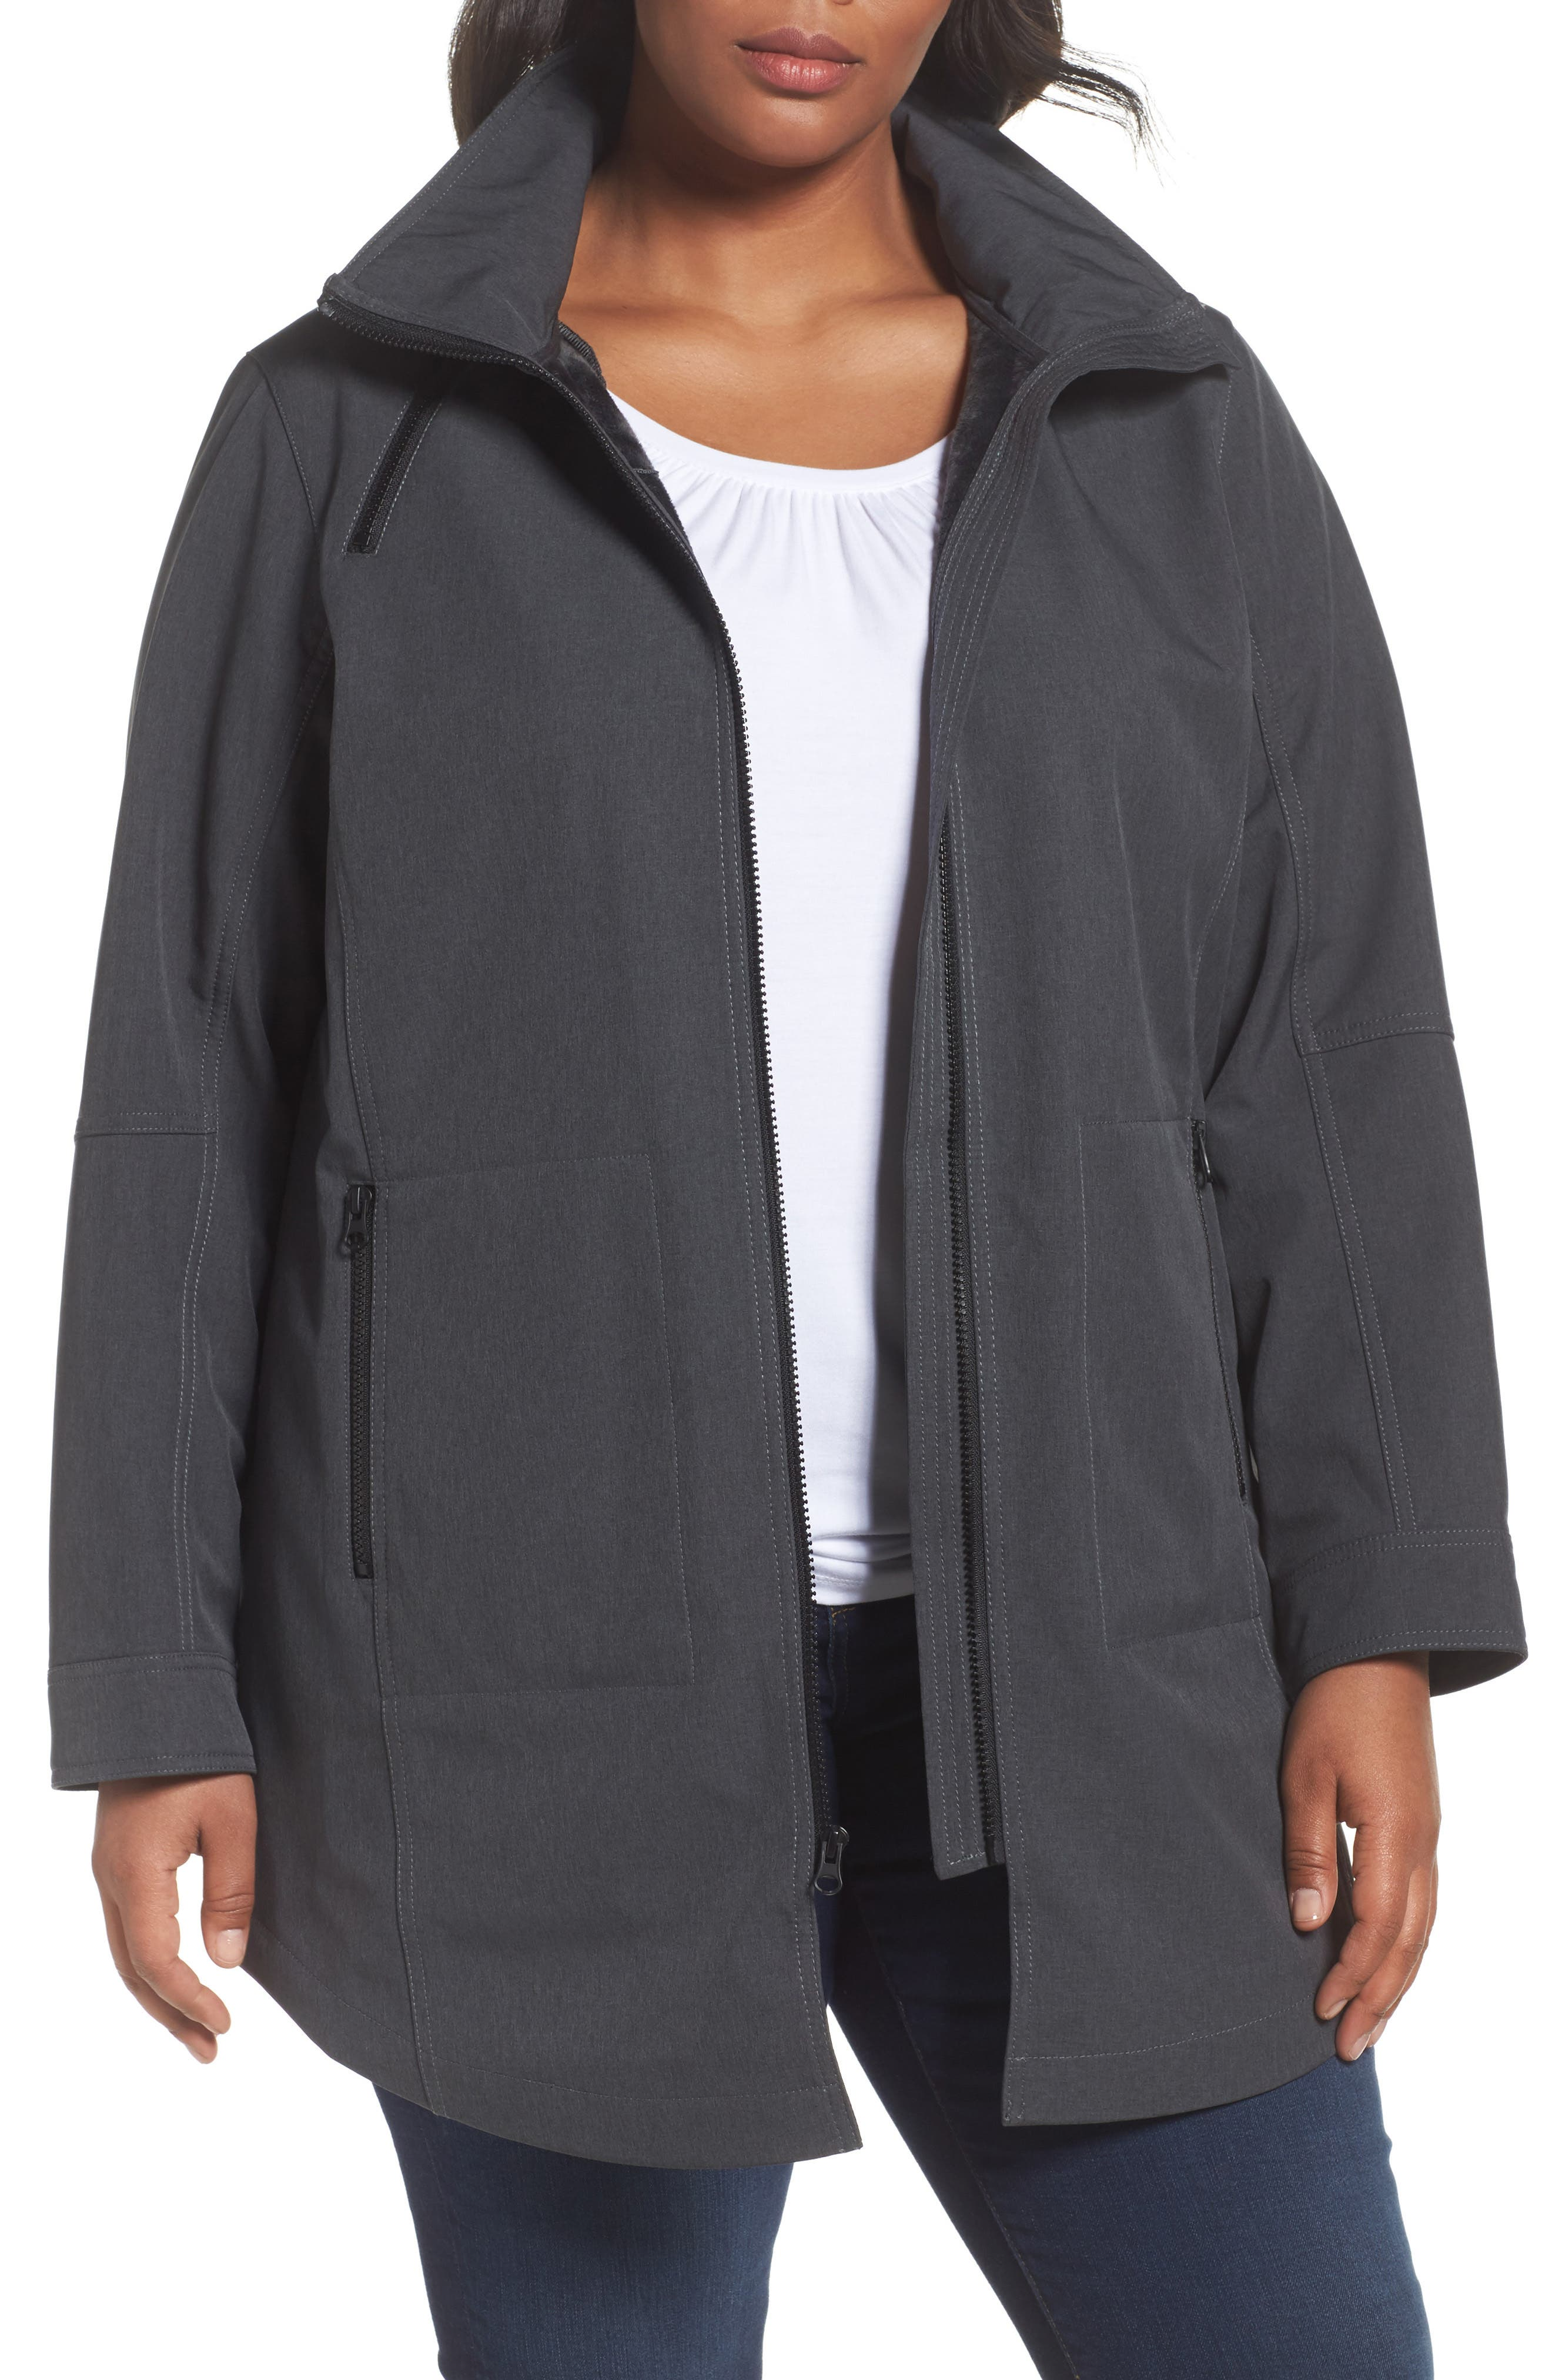 Kristen Blake Stand Collar Raincoat with Detachable Hood (Plus Size)